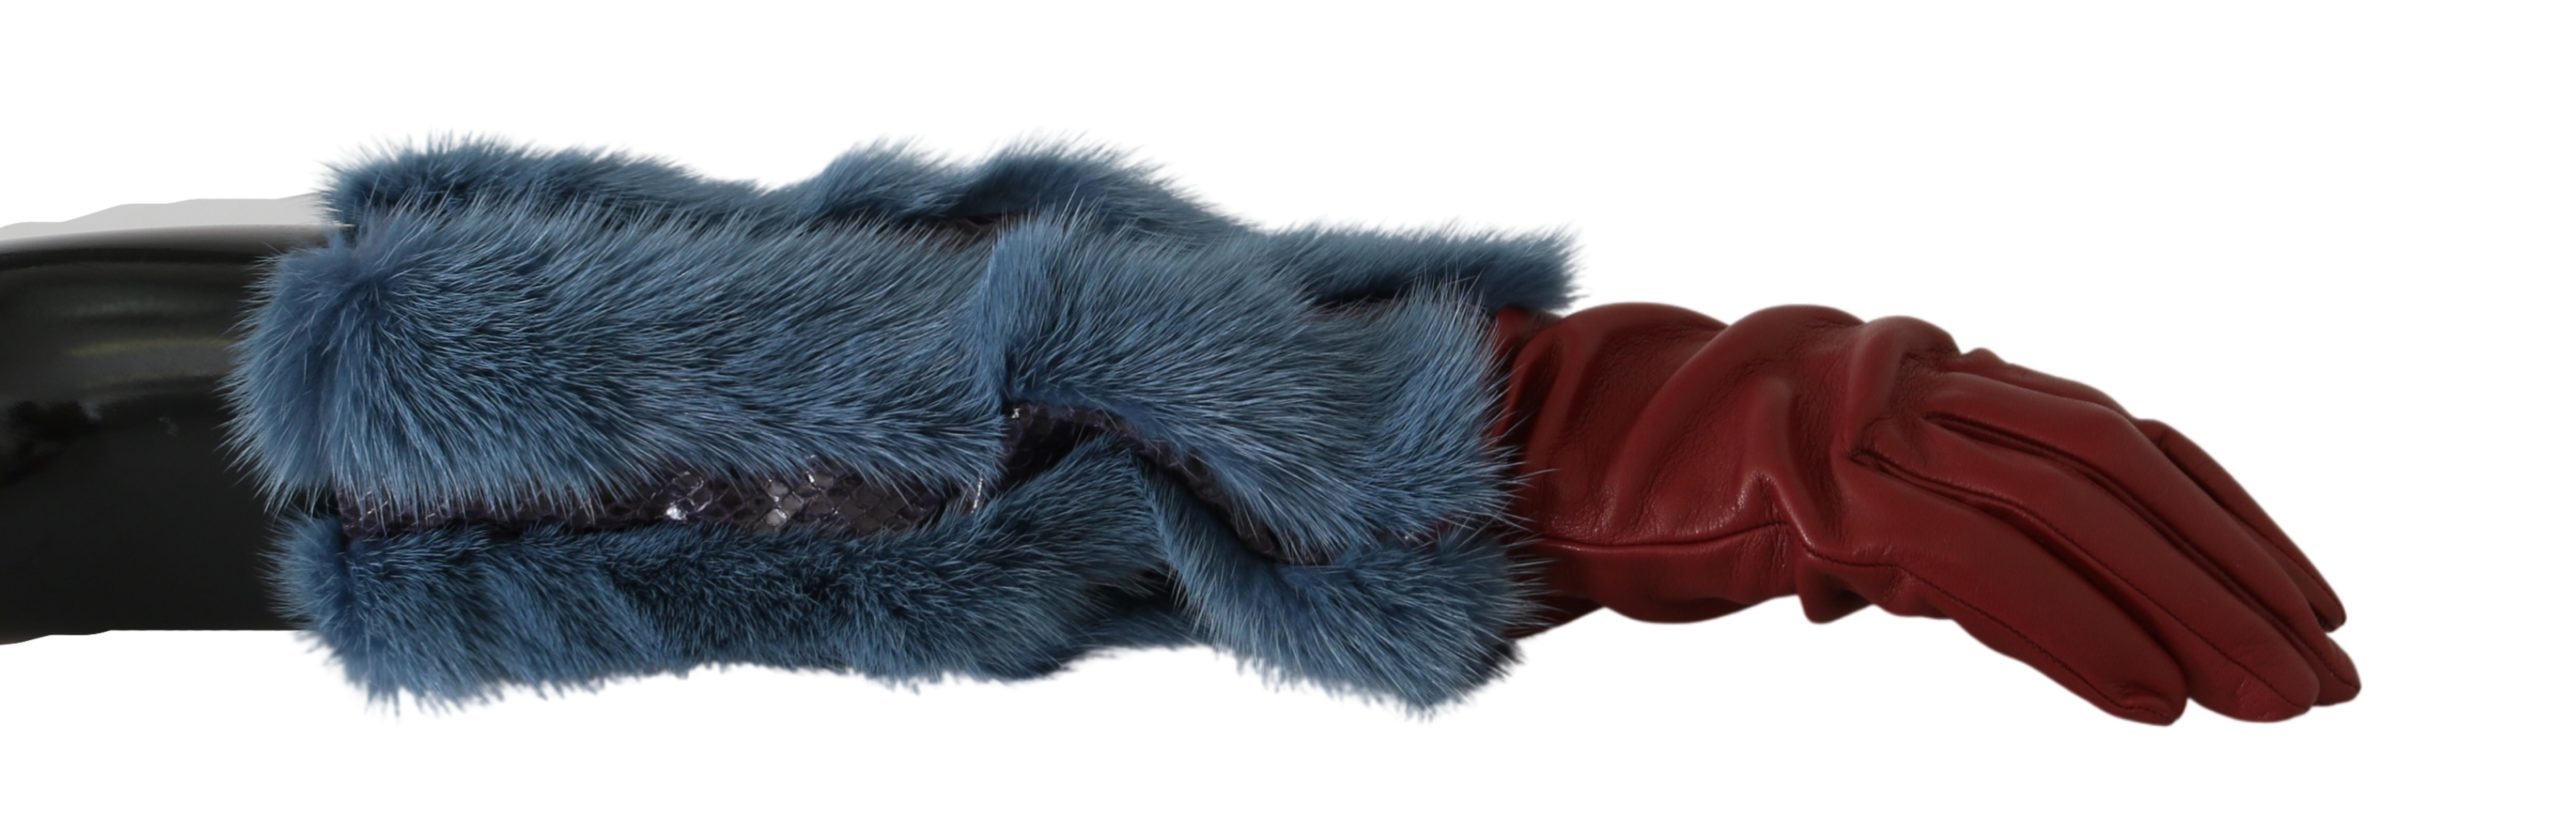 Dolce & Gabbana Women's Fur Mid Arm Length Leather Gloves Red LB1005 - 7.5|S